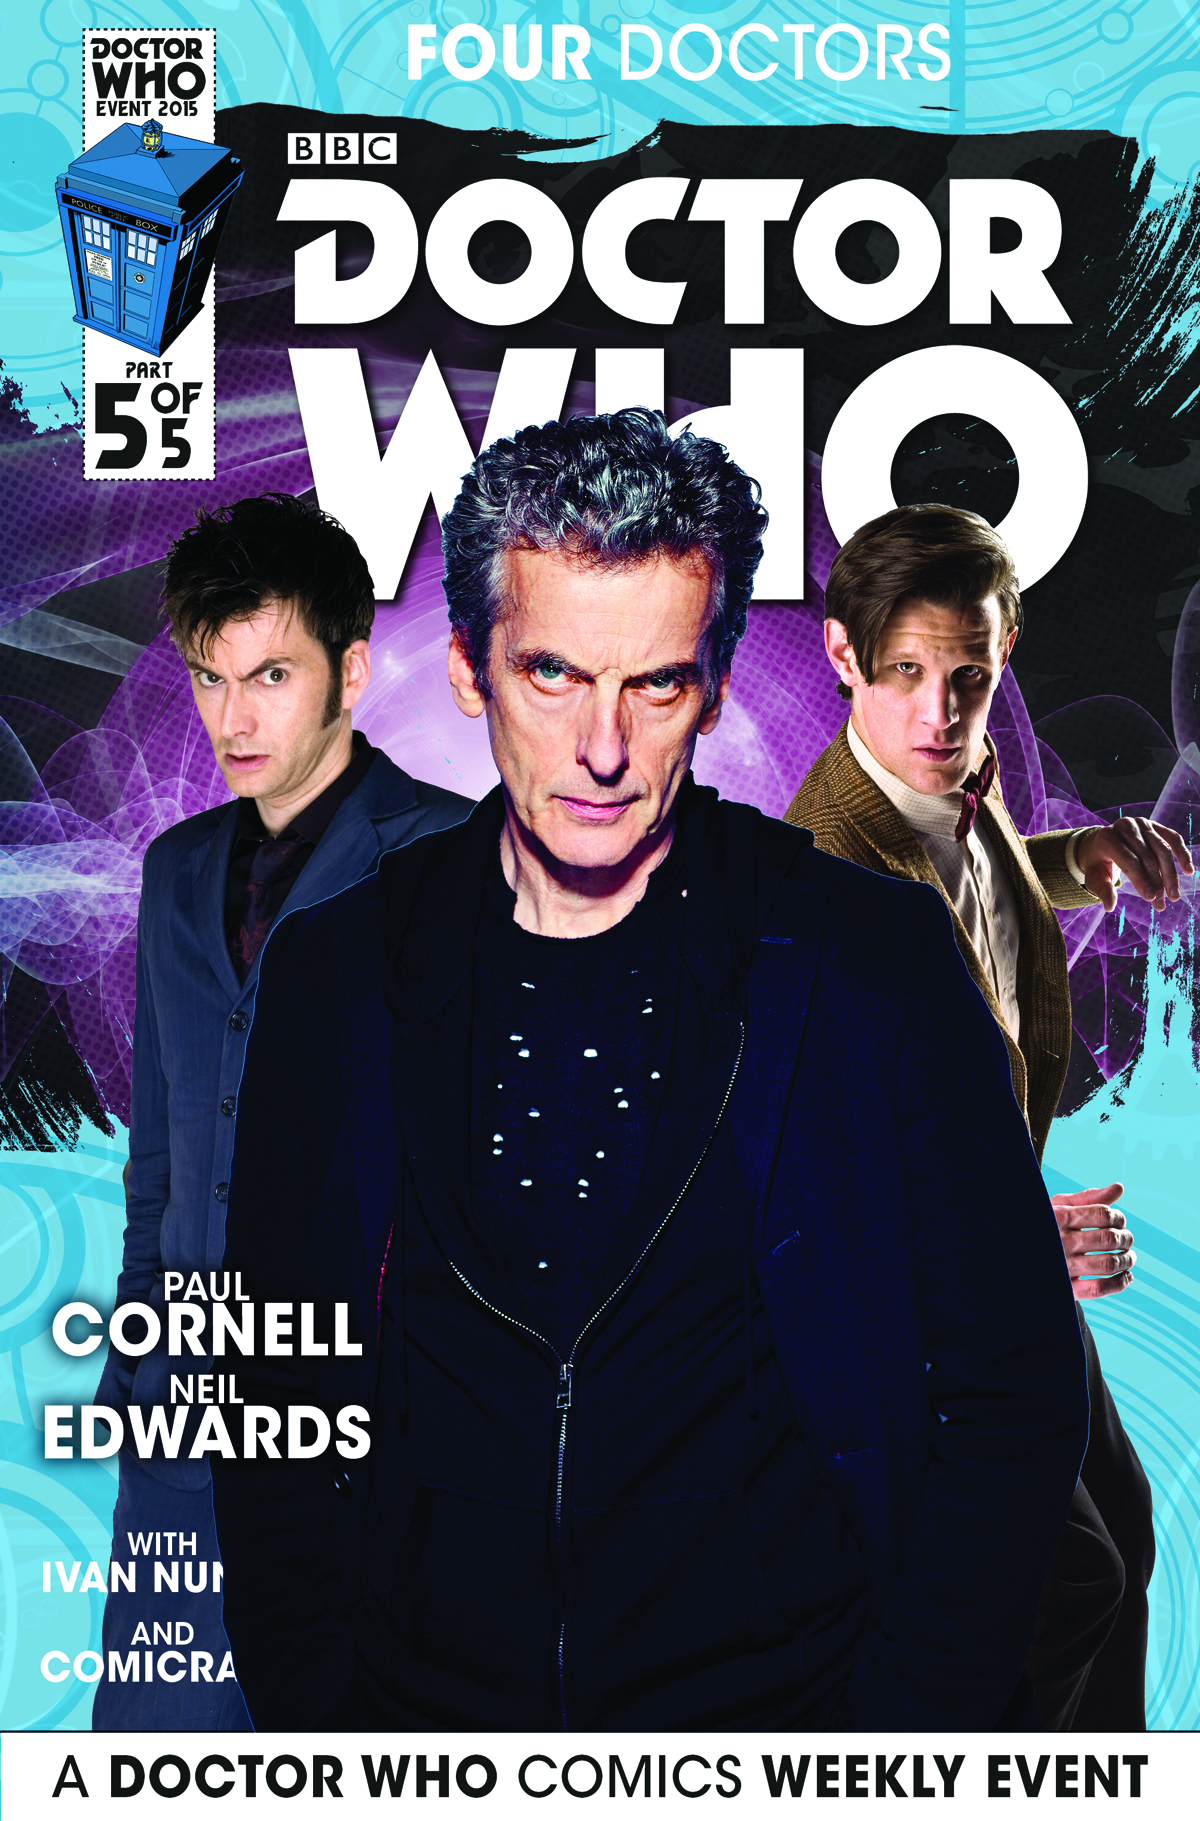 DOCTOR WHO 2015 FOUR DOCTORS #5 (OF 5) SUBSCRIPTION PHOTO (C